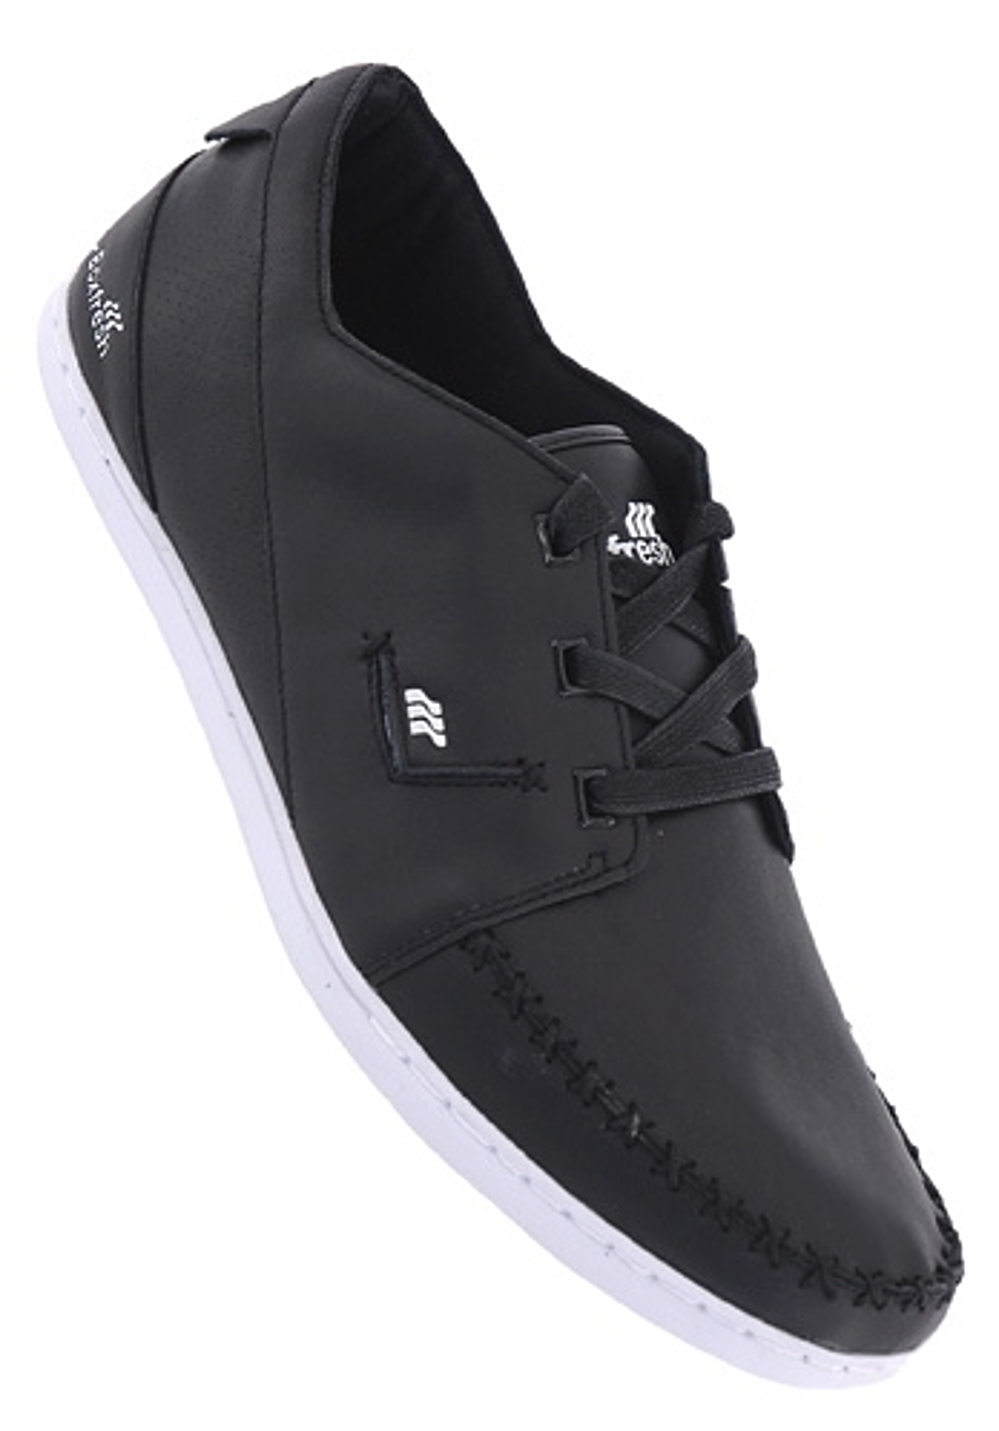 ... BOXFRESH Keel 2 - Fashion Shoes for Men - Black. Previous